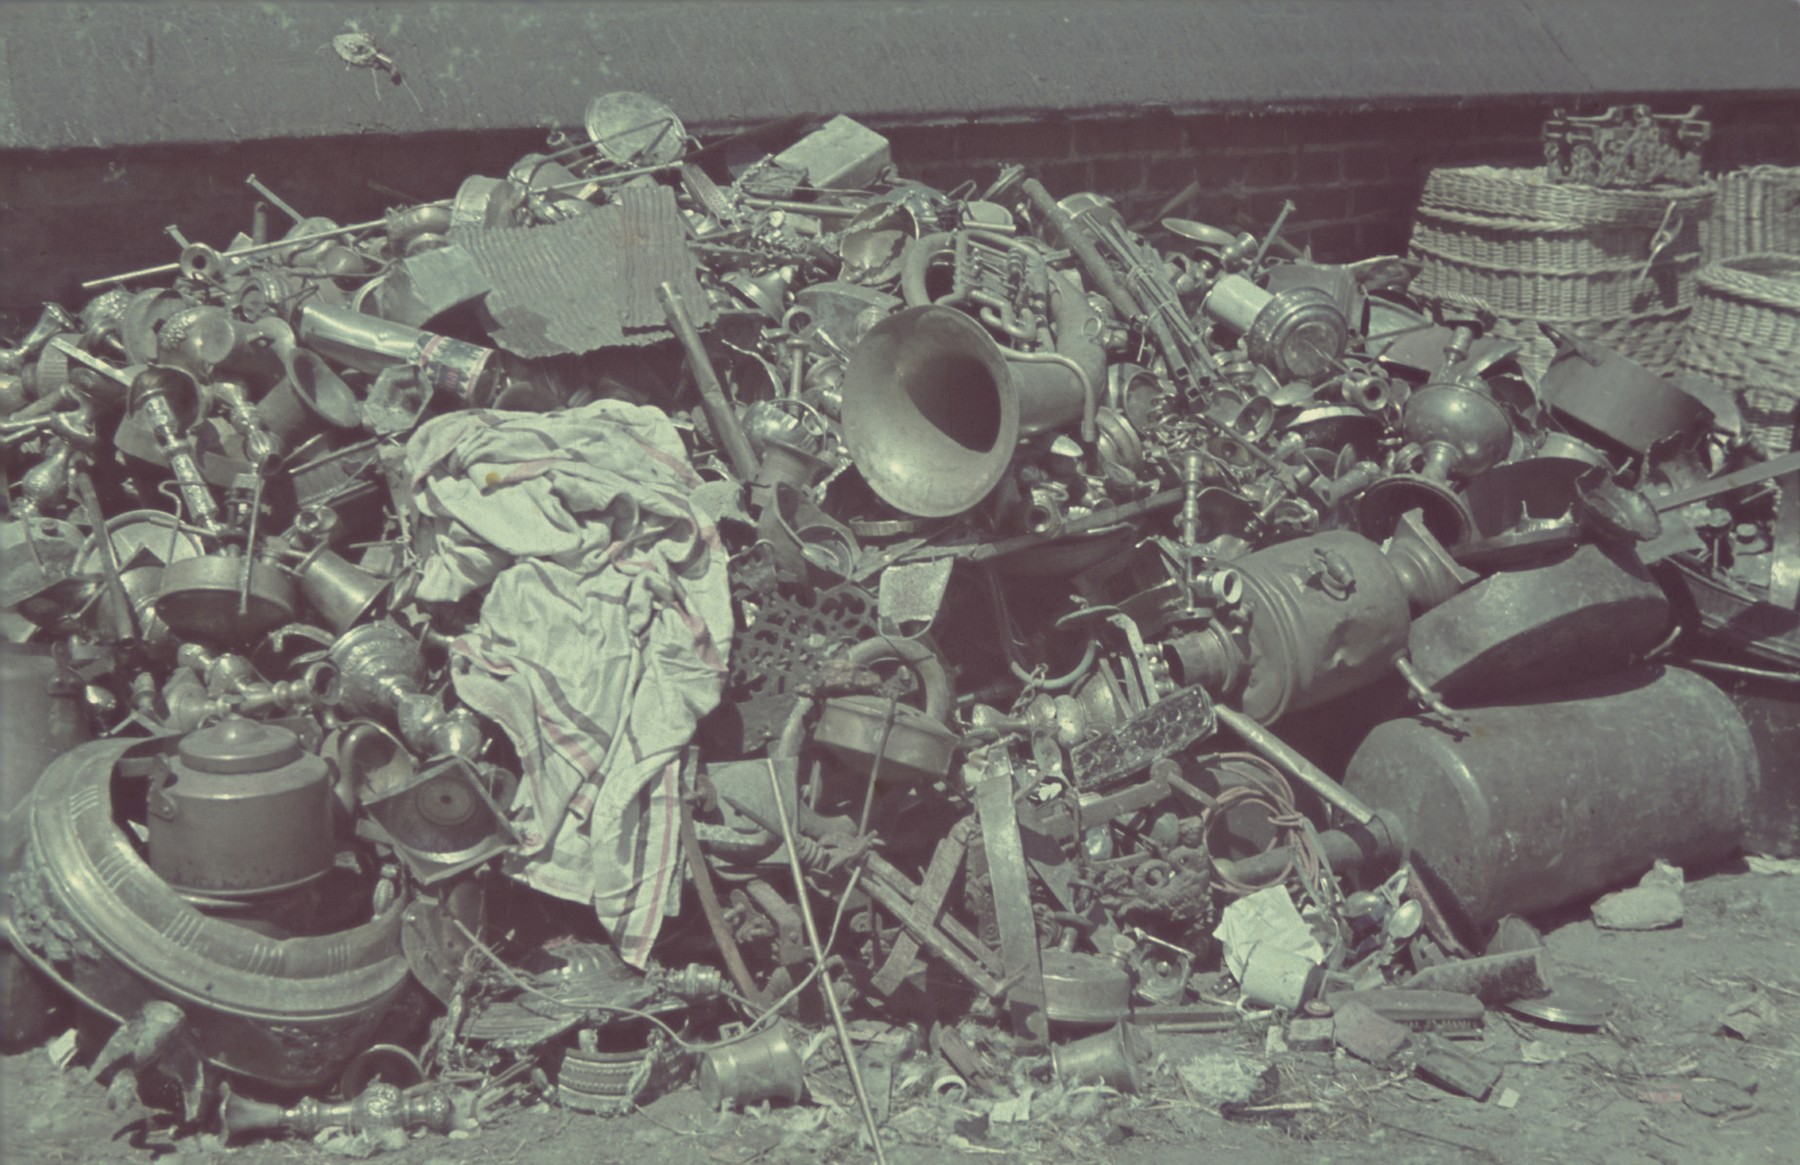 "Pile of discarded personal items and scrap metal in the Pabianice labor camp/storage facility.  Original German caption: ""Pabianice, Judenlager"" (Jewish camp), #30."